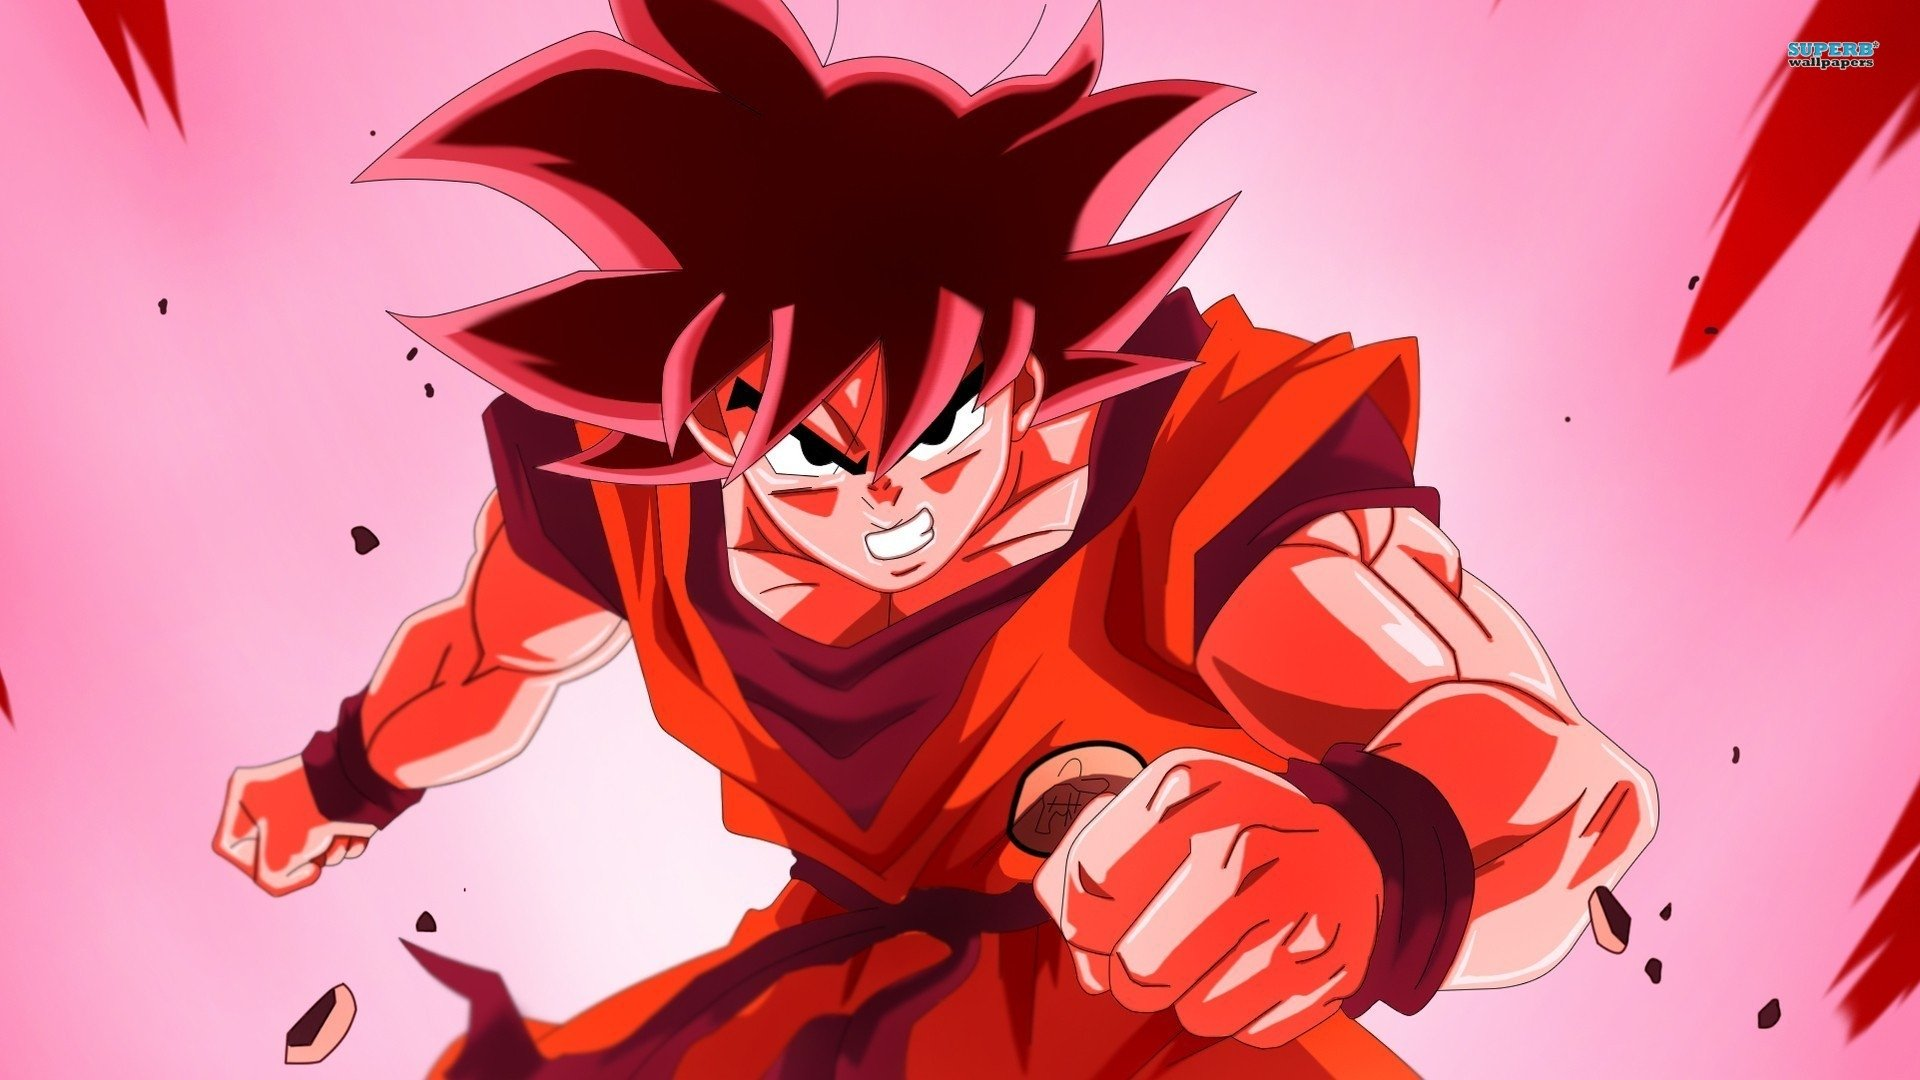 1124 Goku HD Wallpapers Background Images 1920x1080